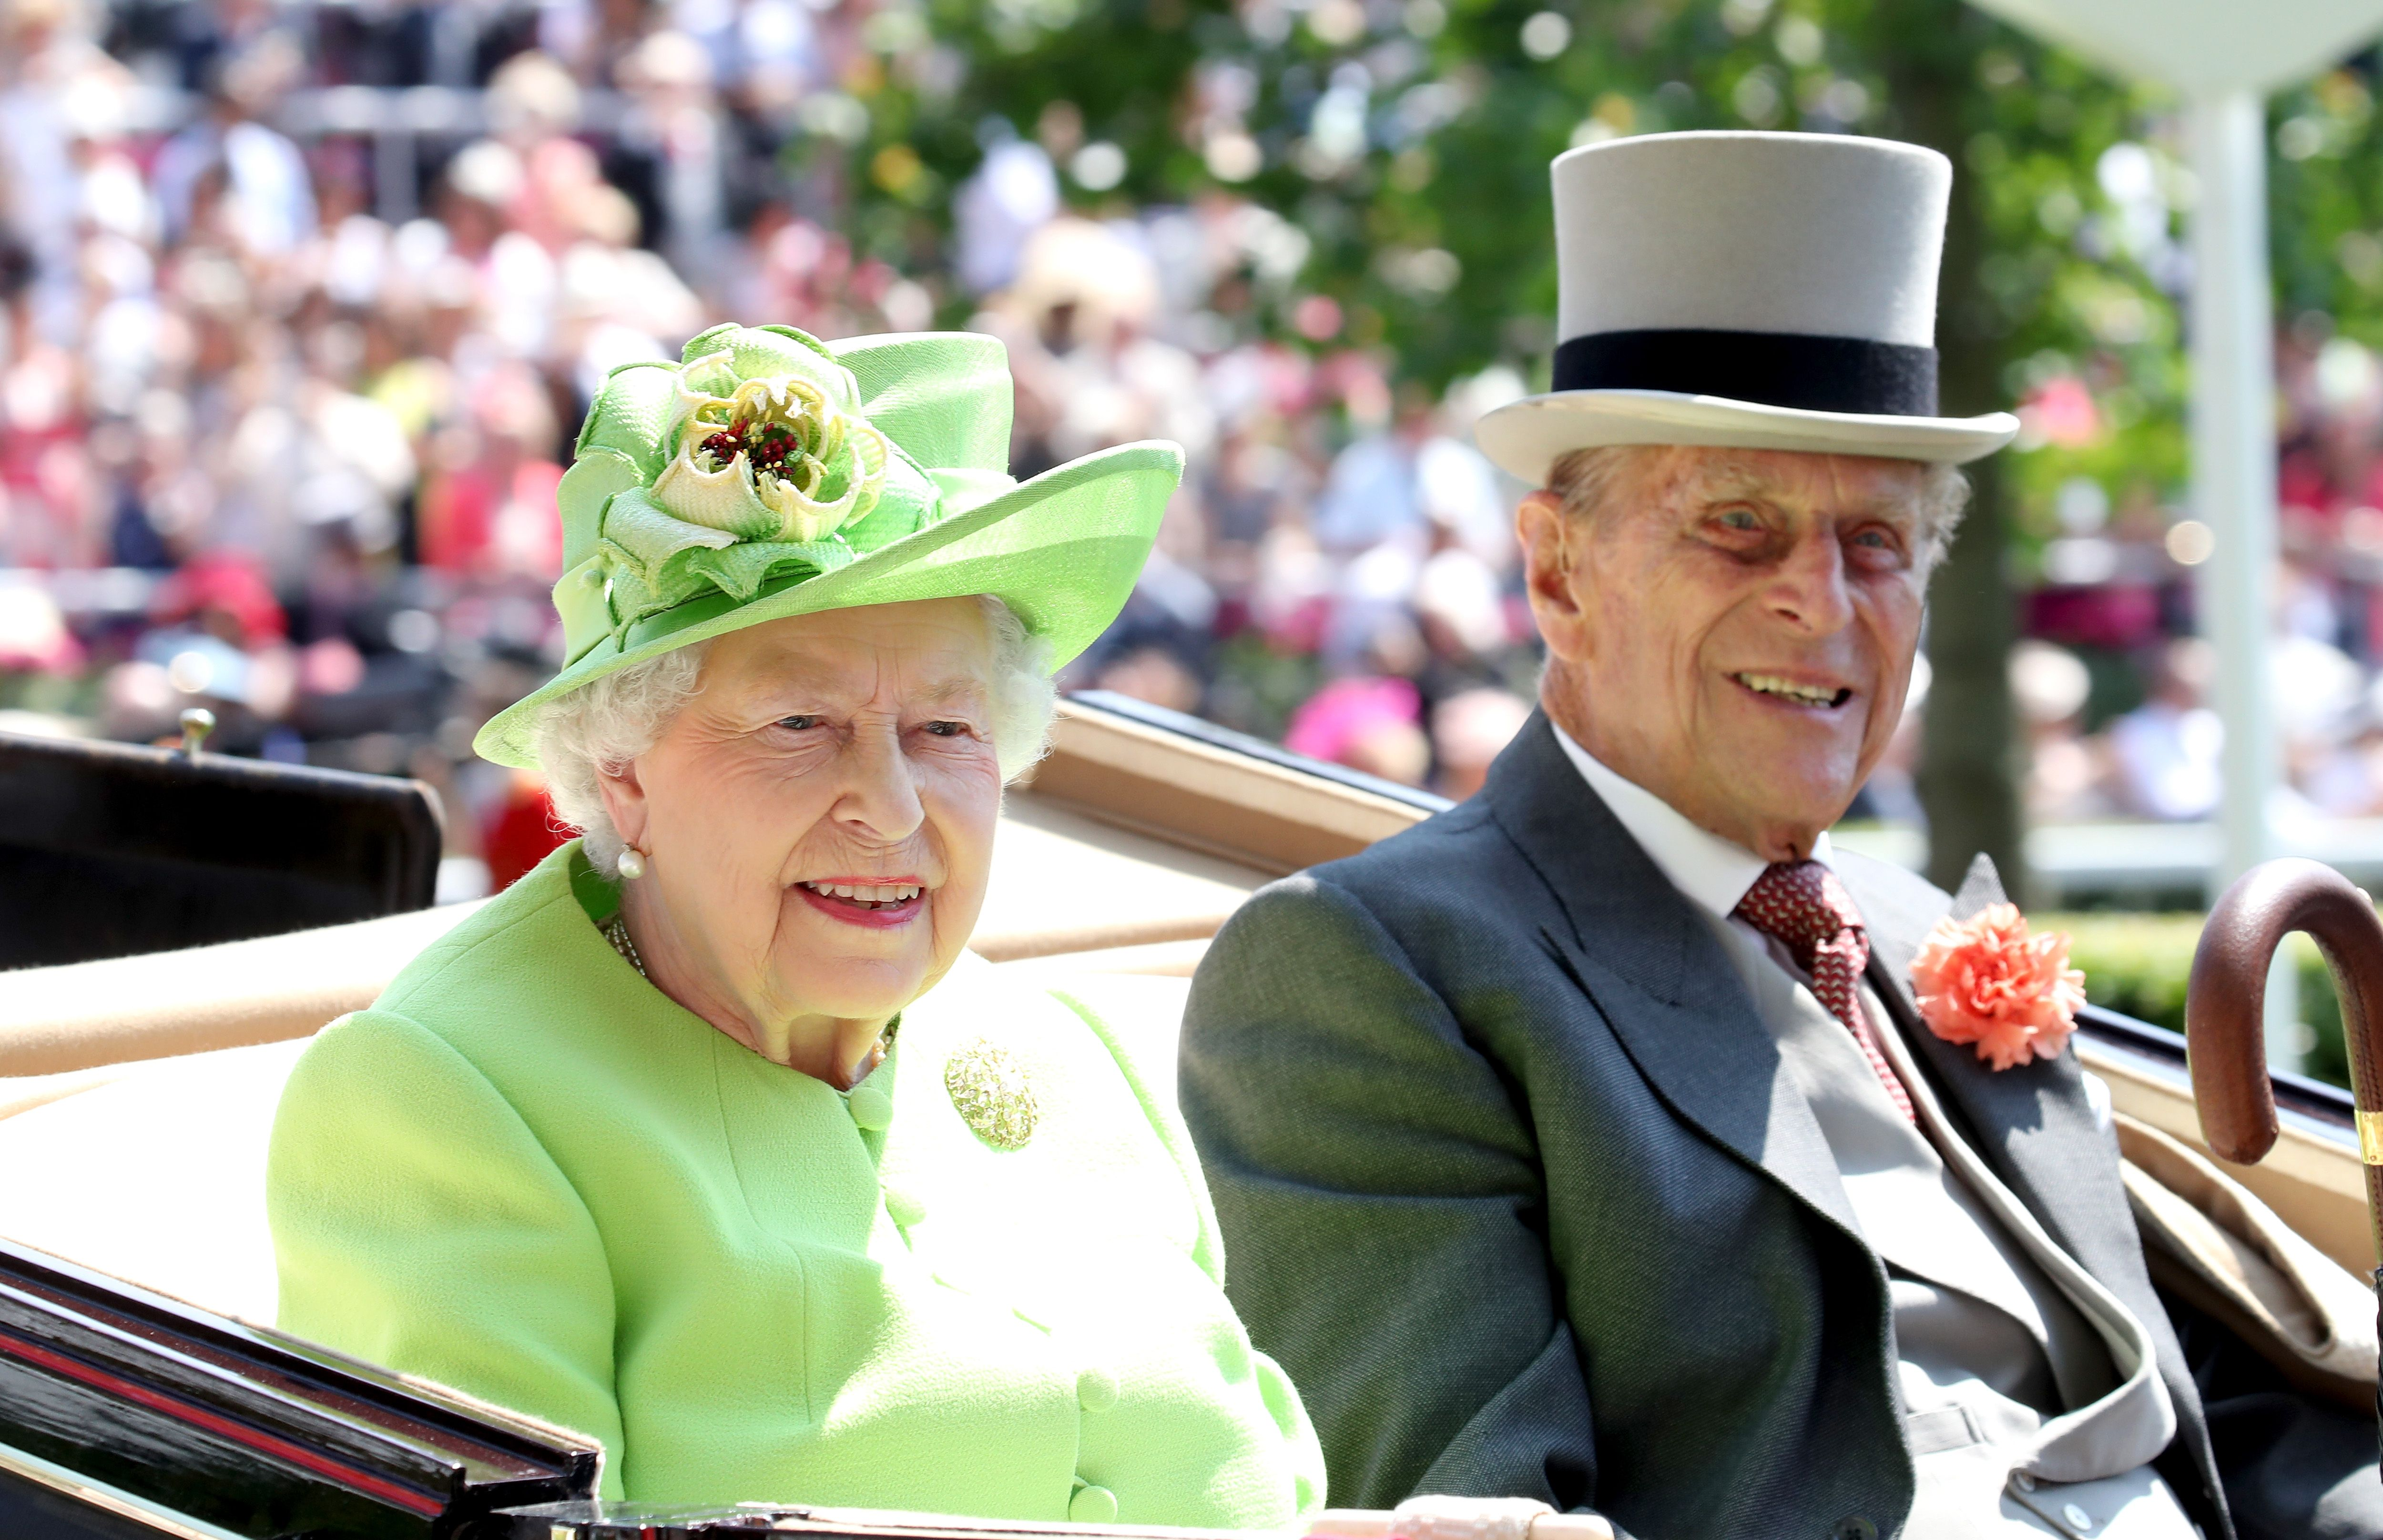 Prince Philip proved romance isn't dead – even aged 99